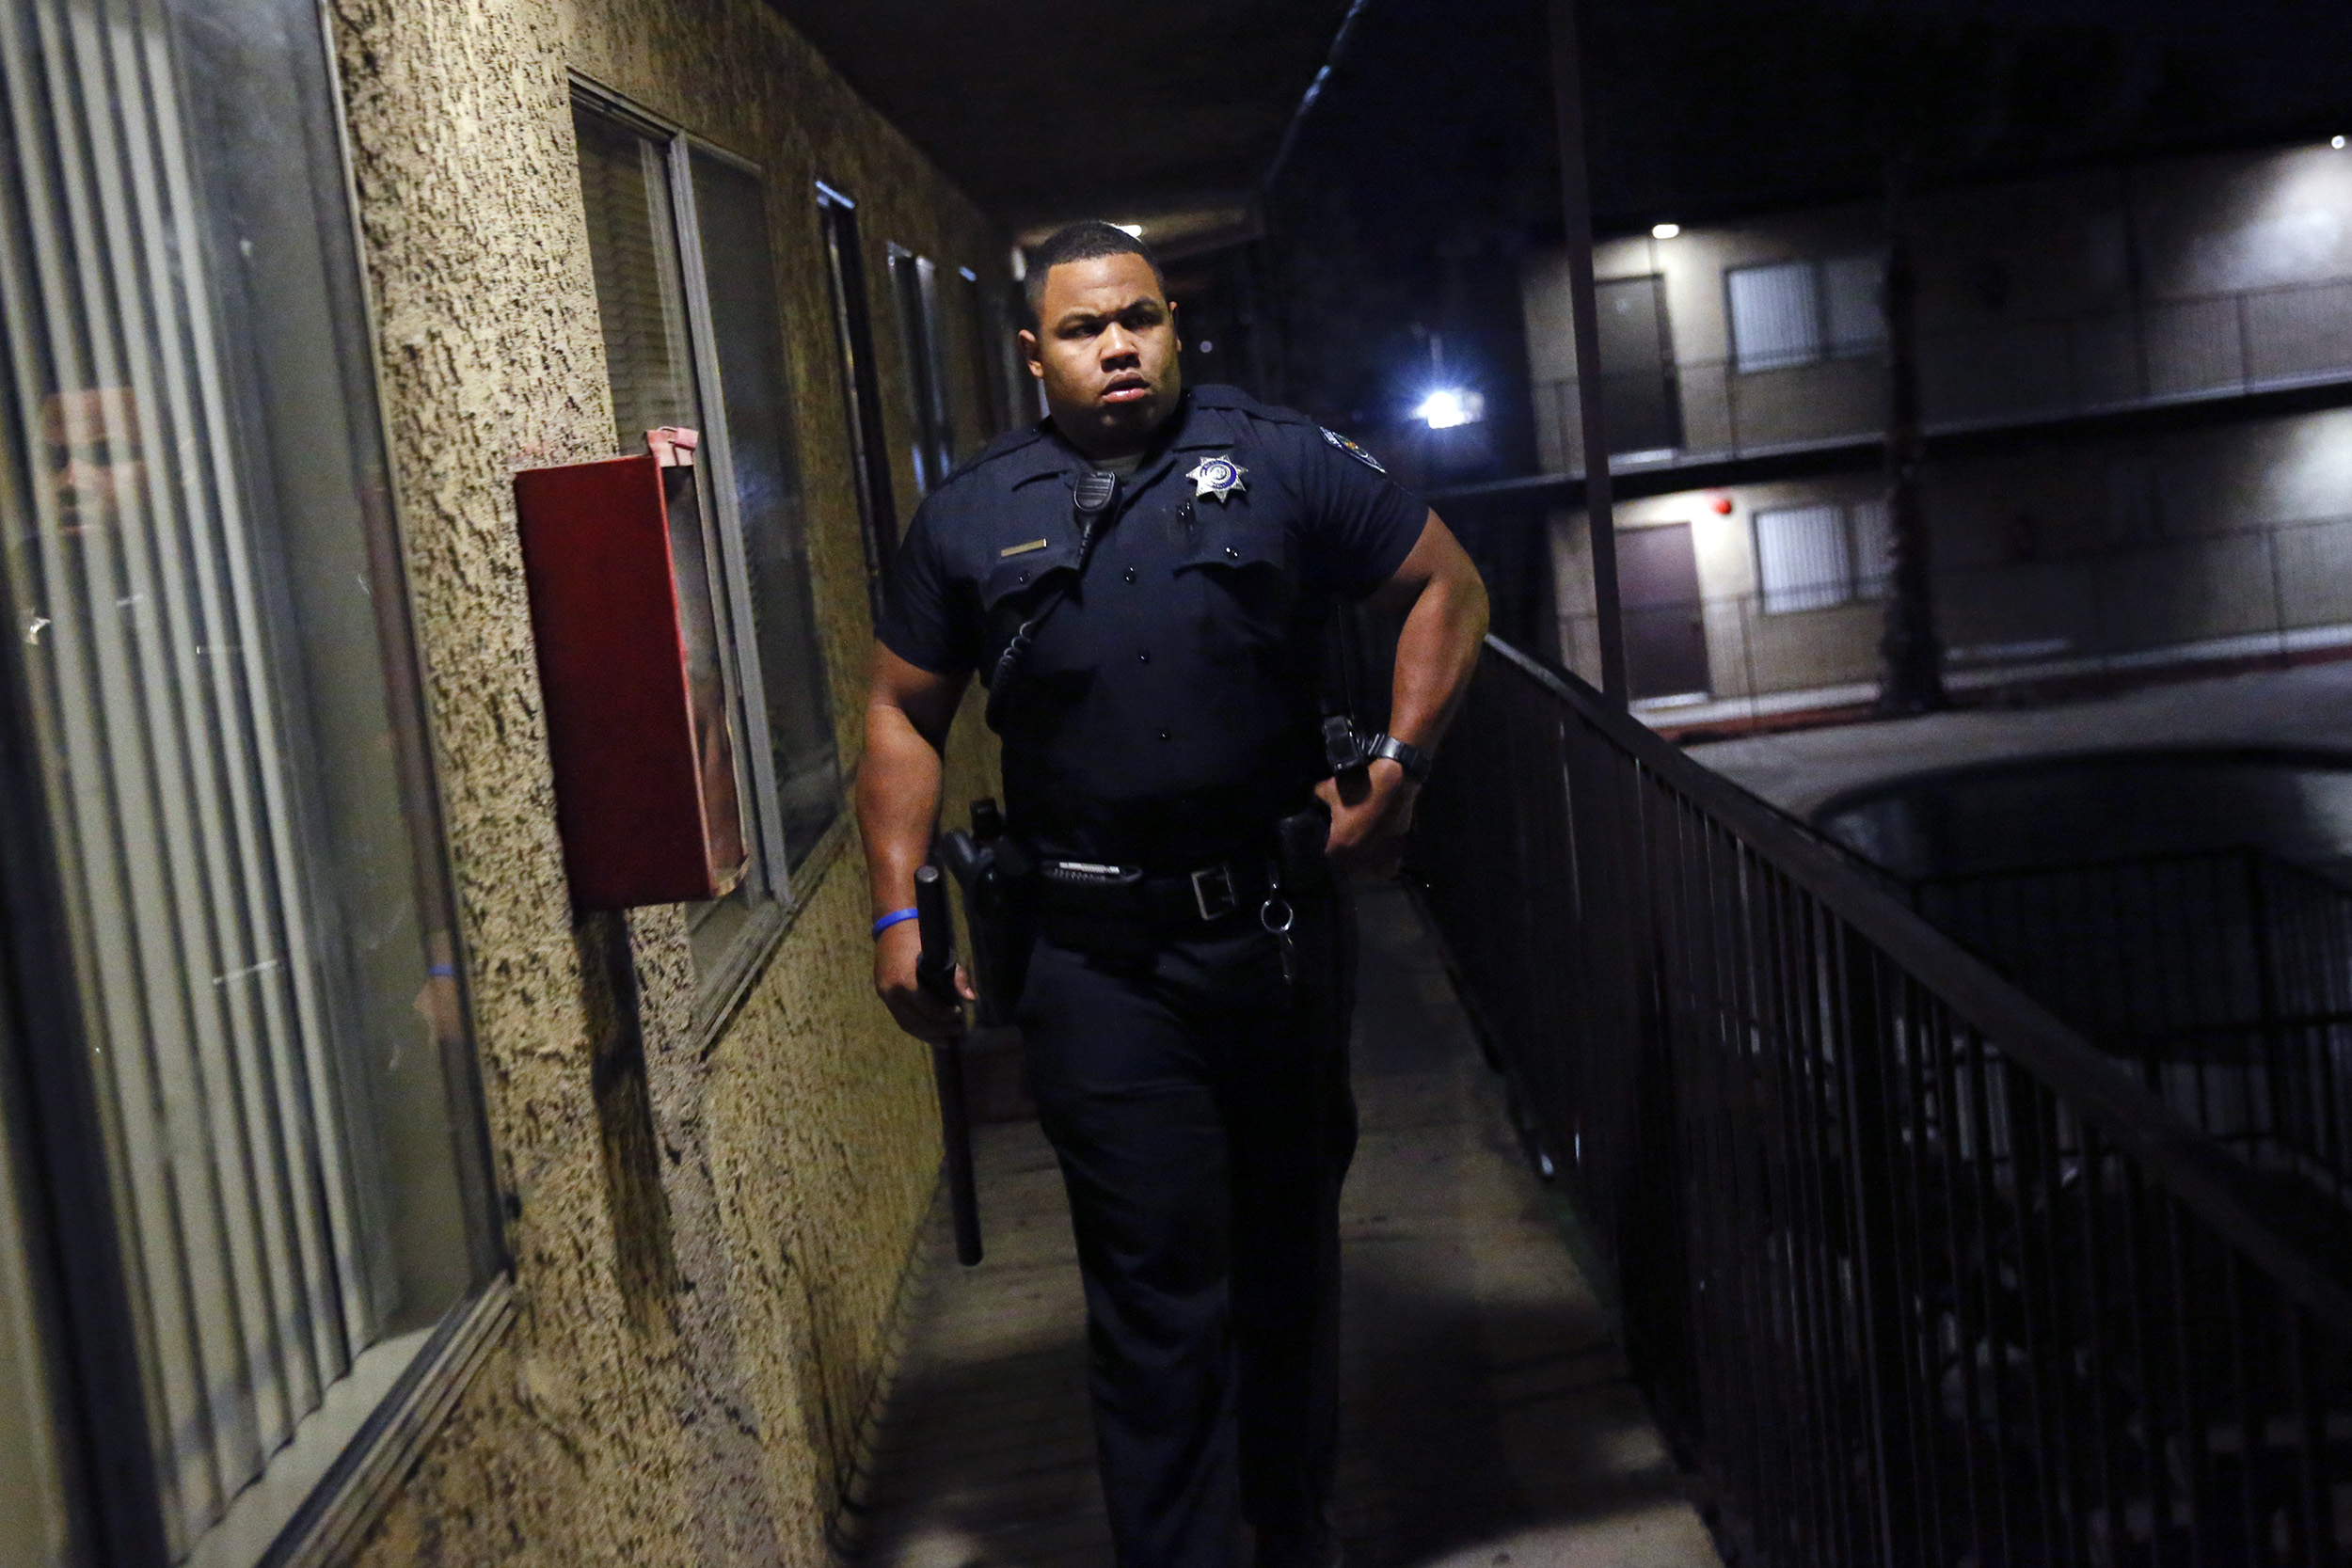 San Bernardino Police Department Officer Darren Sims walks through an apartment complex after providing assistance to a fire department response to a false medical 911 call on the graveyard shift in San Bernardino, California, U.S., on Saturday, January 24, 2015.